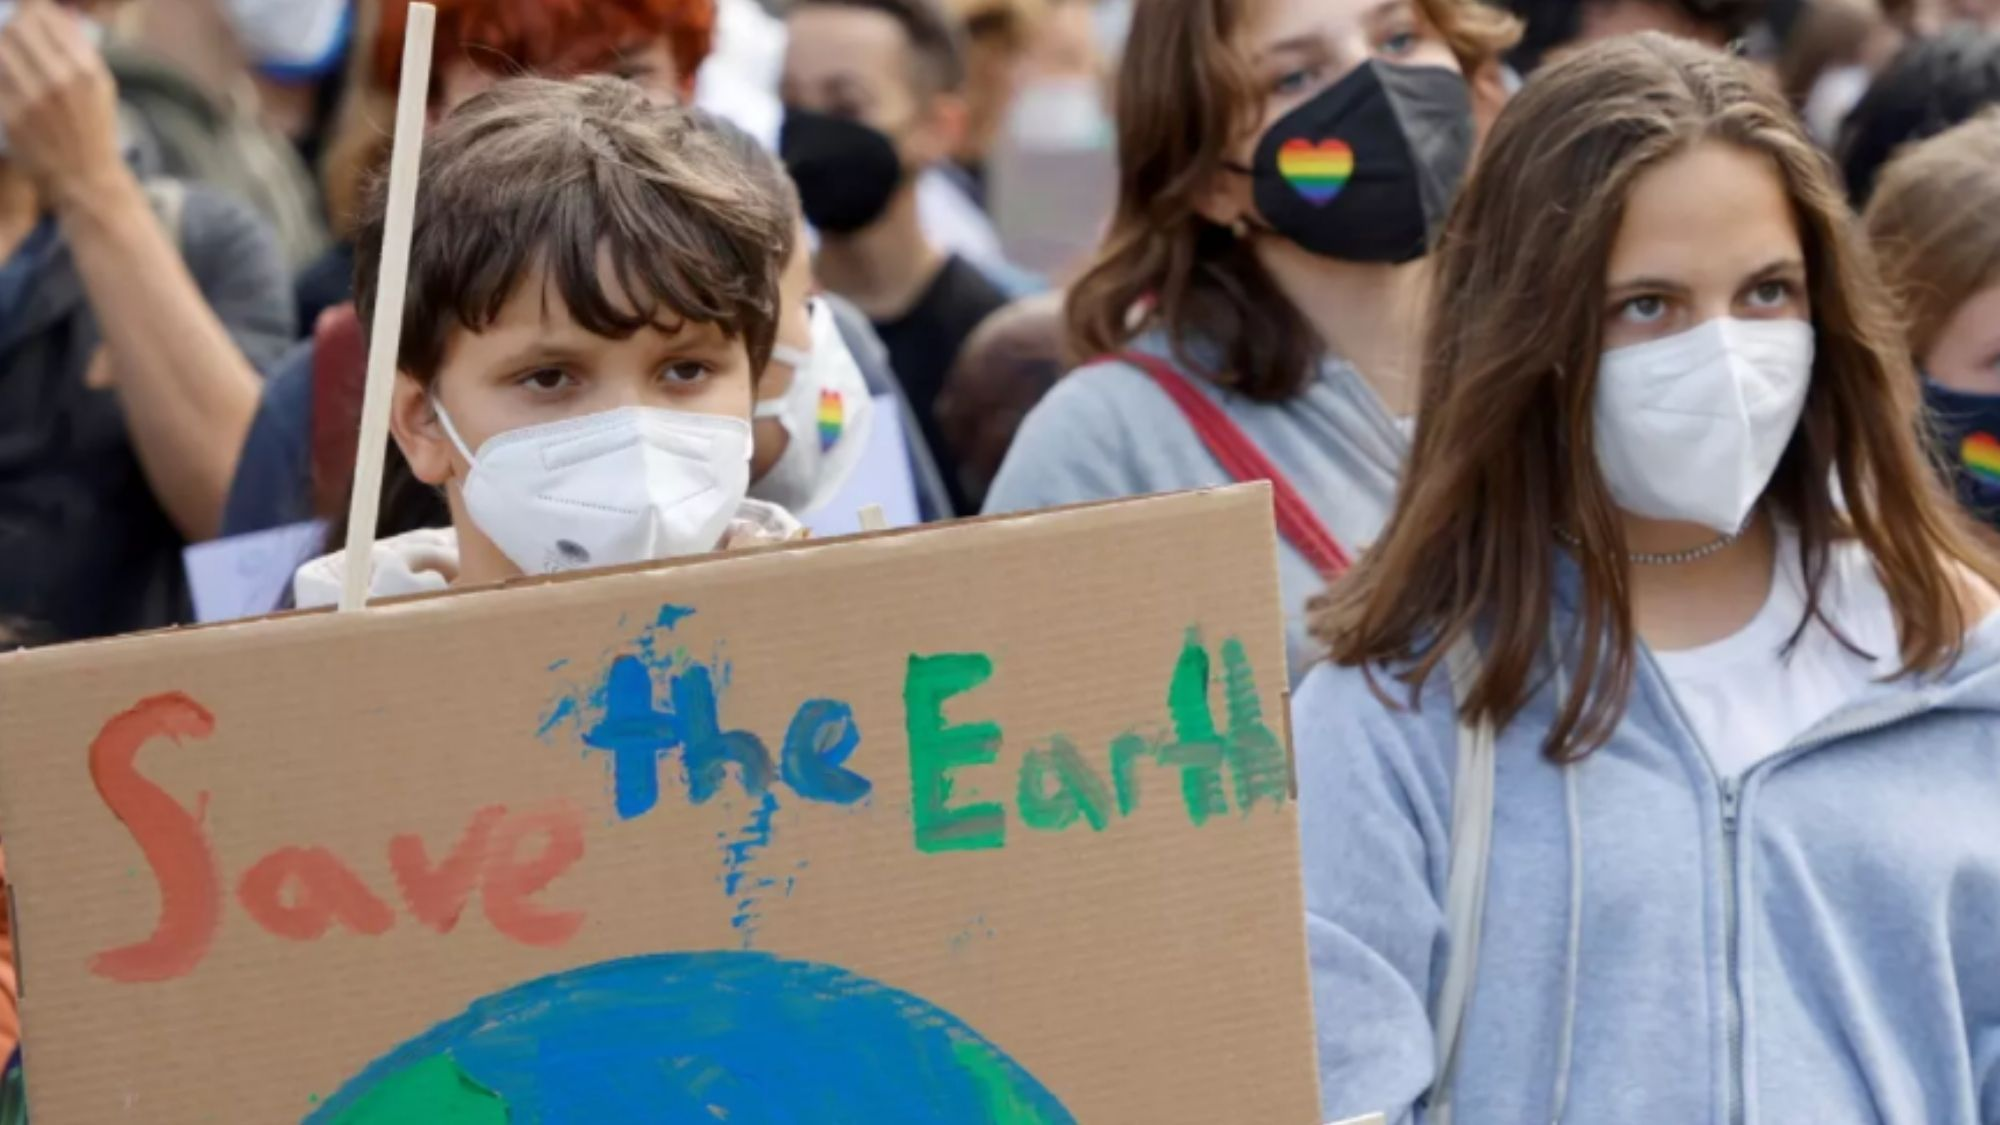 COP26 must tackle youth's anxieties over climate change photo weforum.org